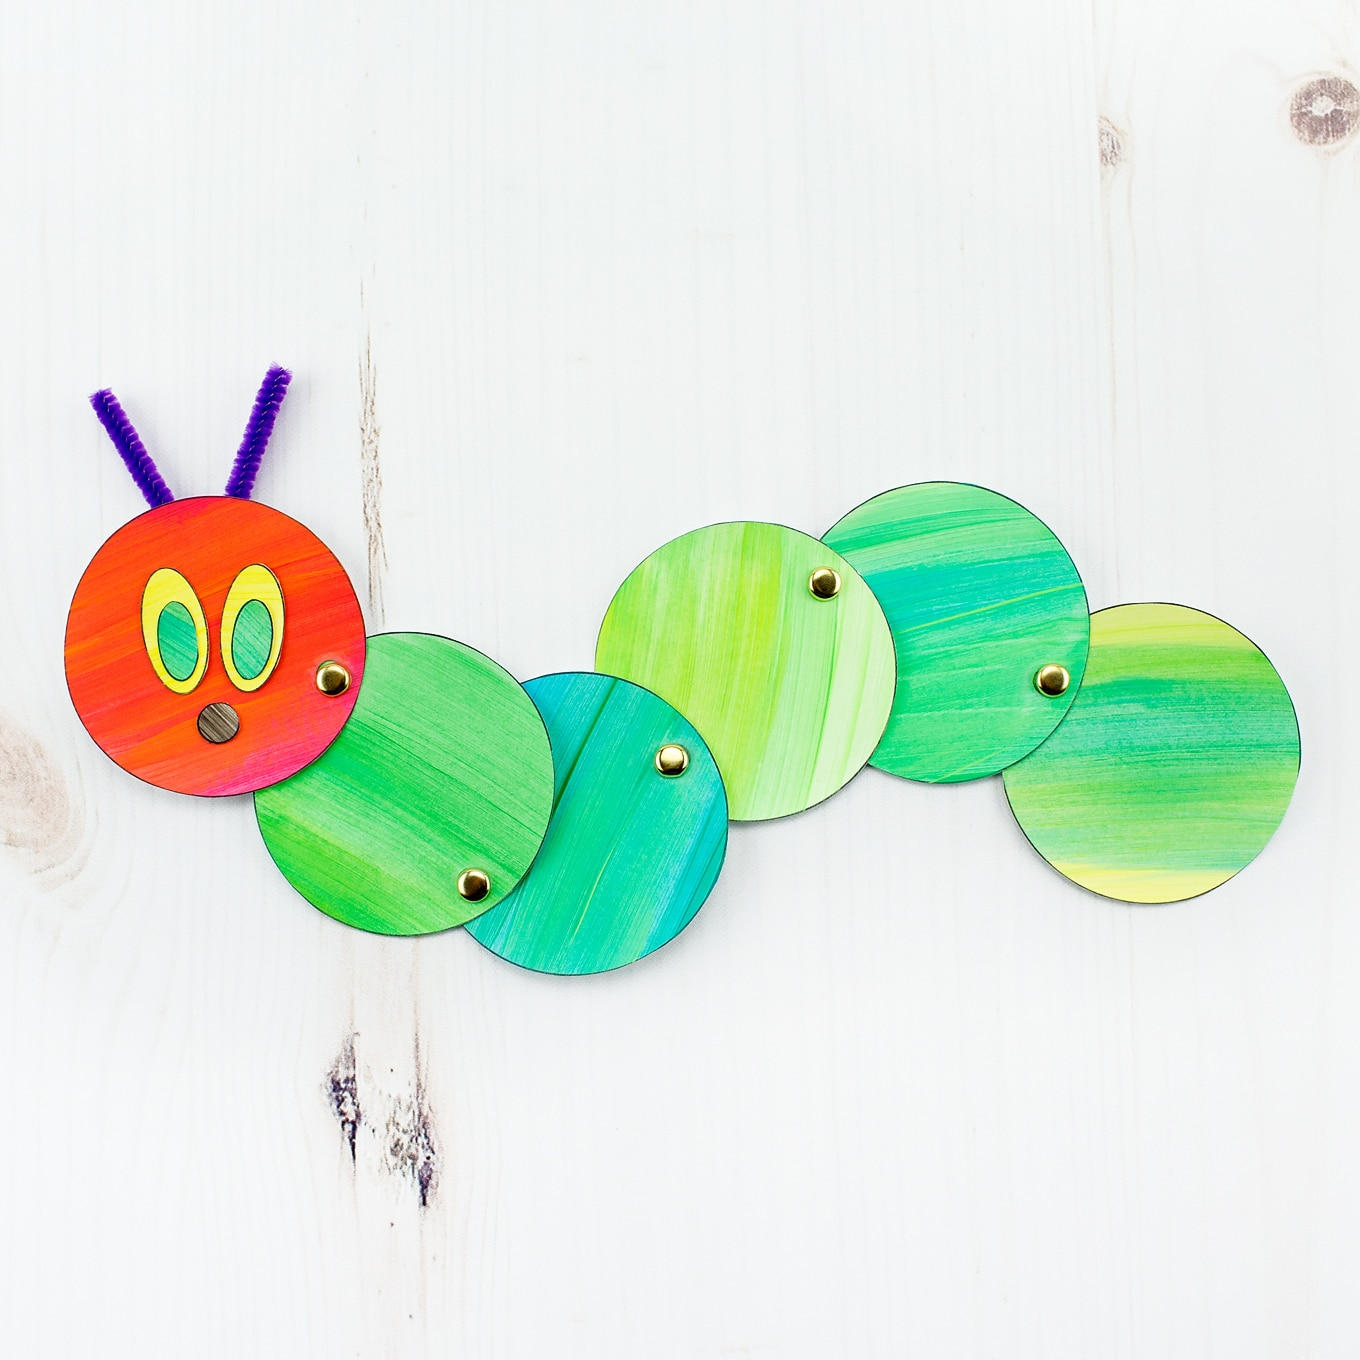 How To Make An Easy And Fun Wiggling Caterpillar Craft